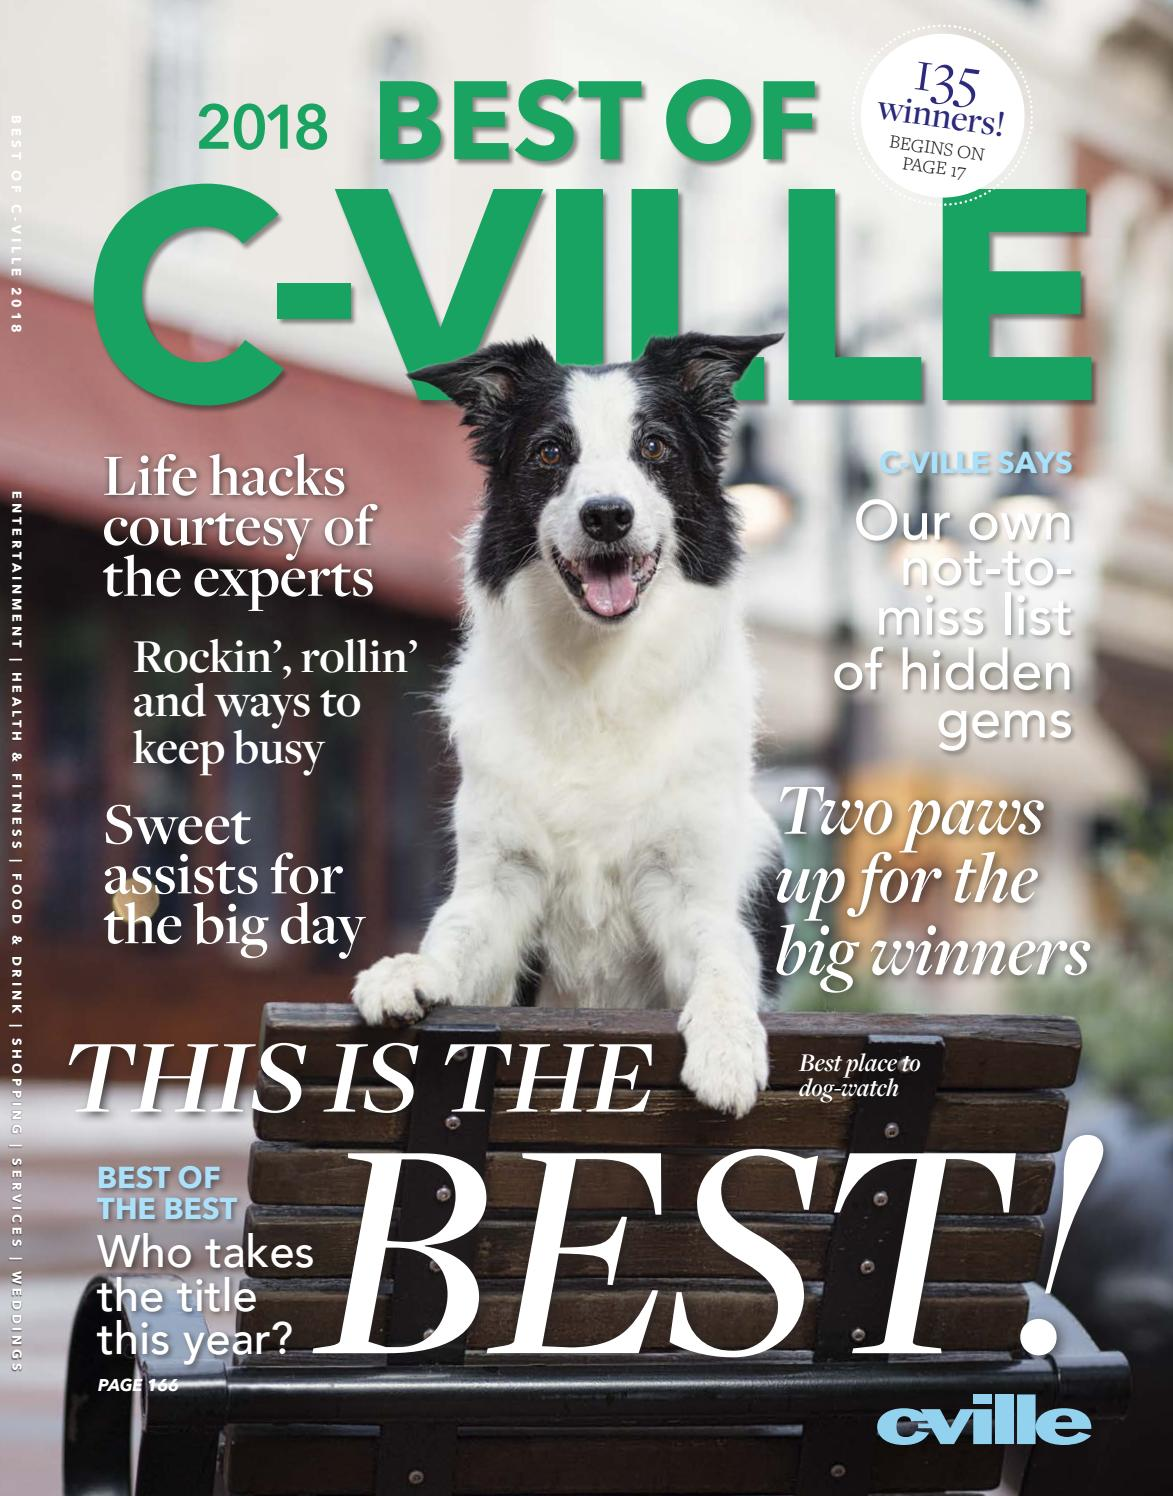 63d0492618 Best of C-VILLE 2018 by C-VILLE Weekly - issuu